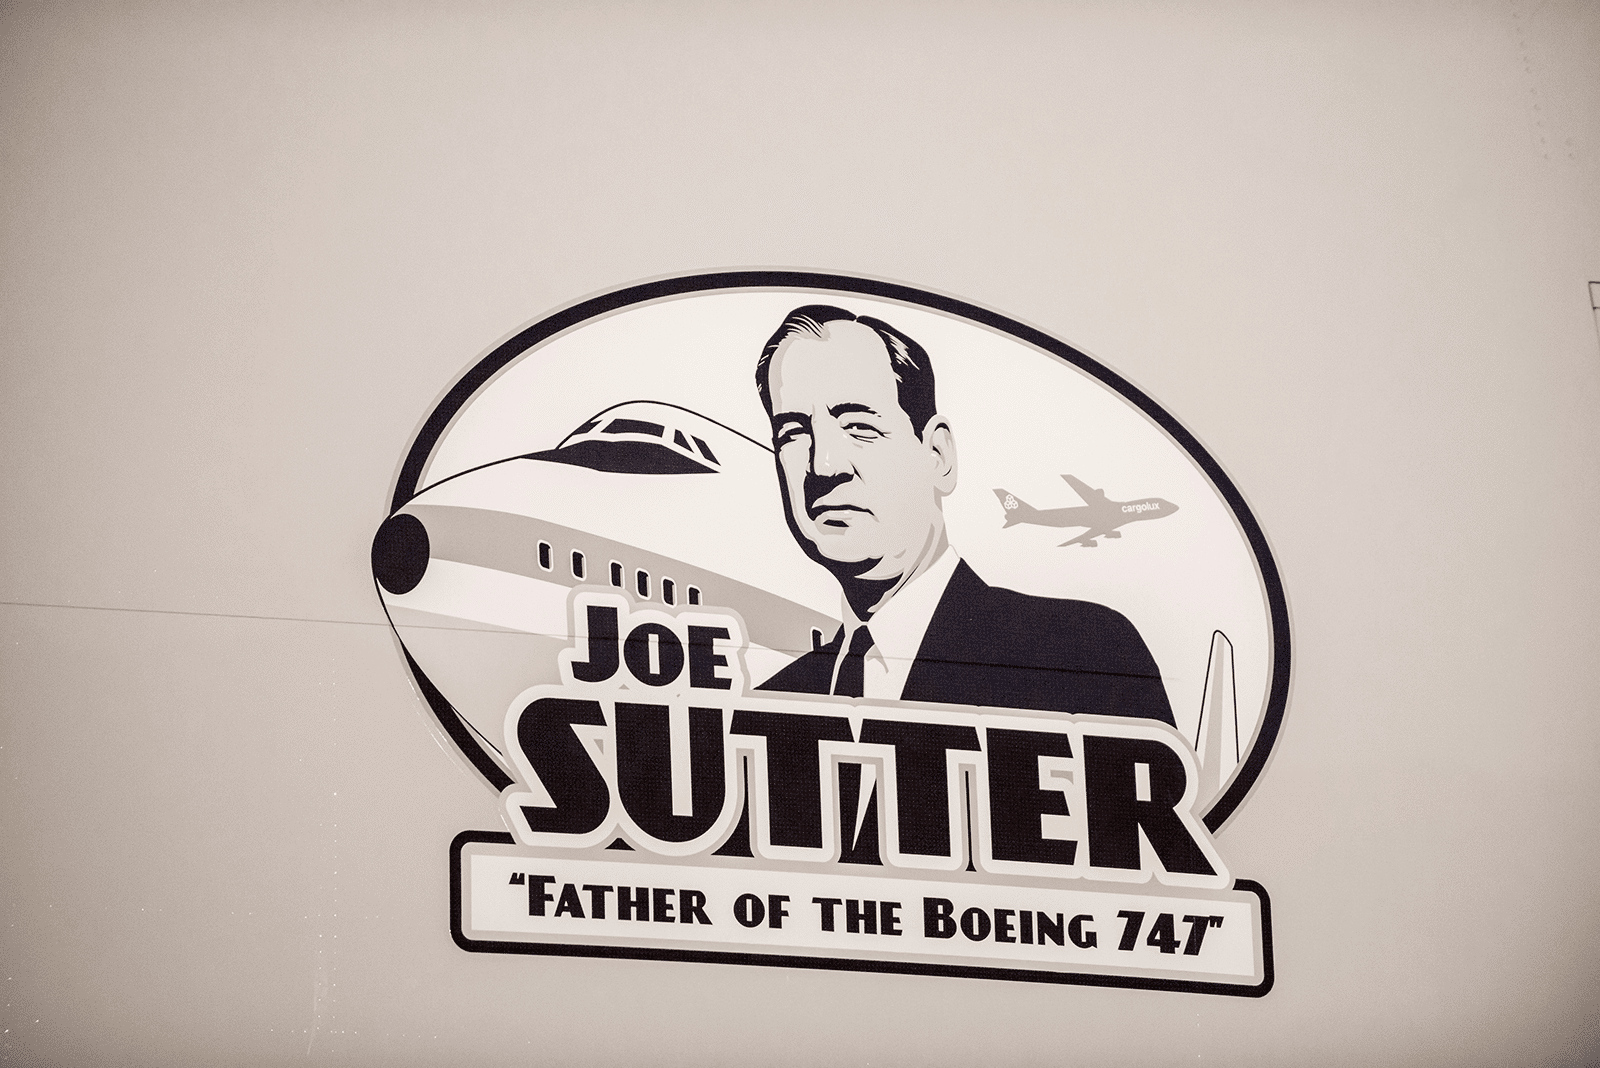 The latest Cargolux 747-8 Freighter carries a special decal The Father of the Boeing 747 Joe Sutter